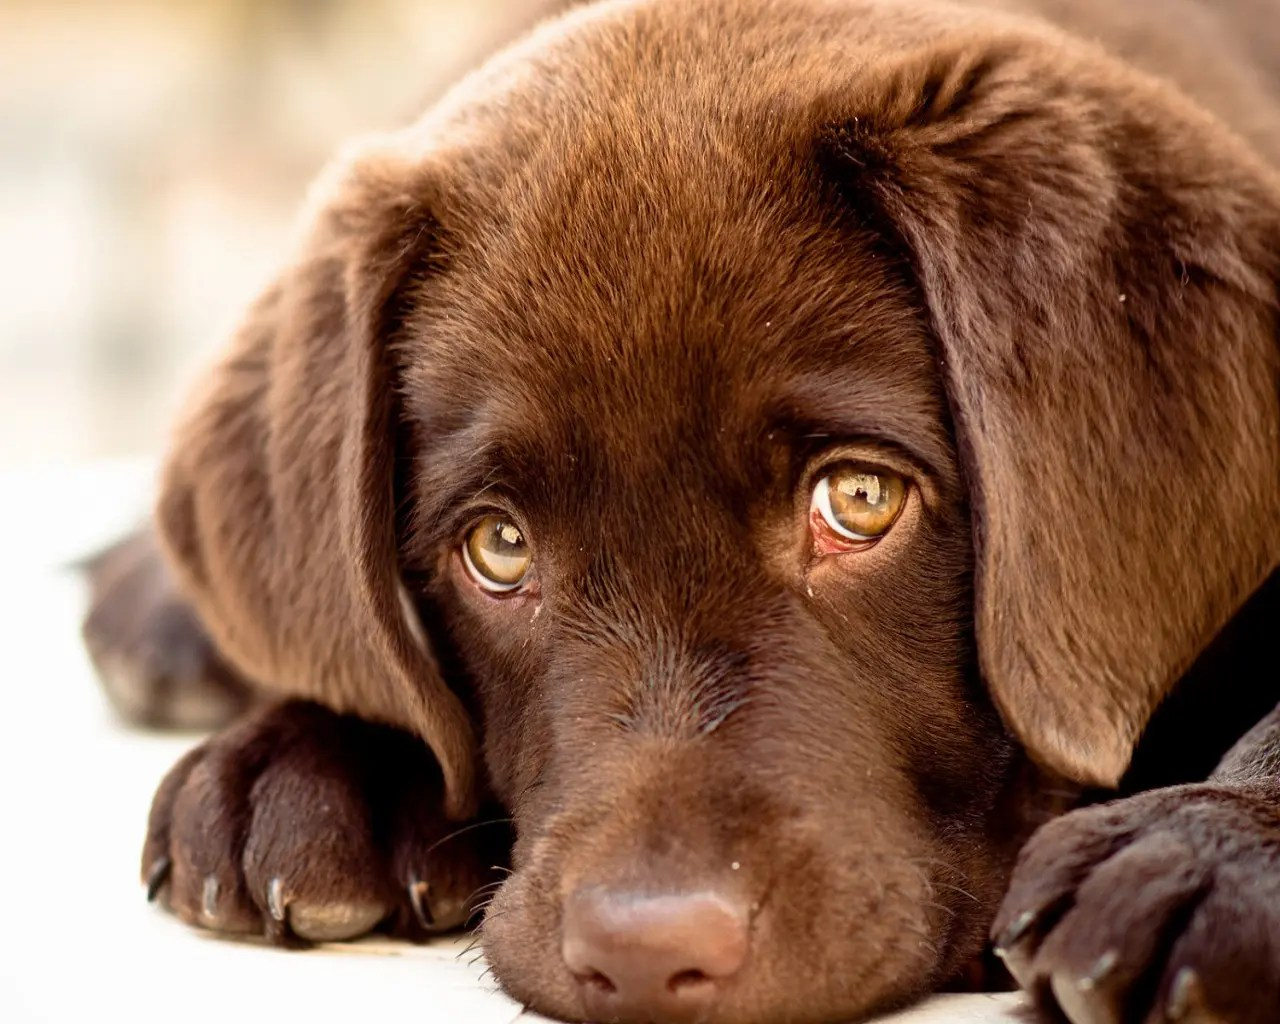 Cute Labrador Puppies Wallpapers Innocent Puppy Eyes 1280x1024